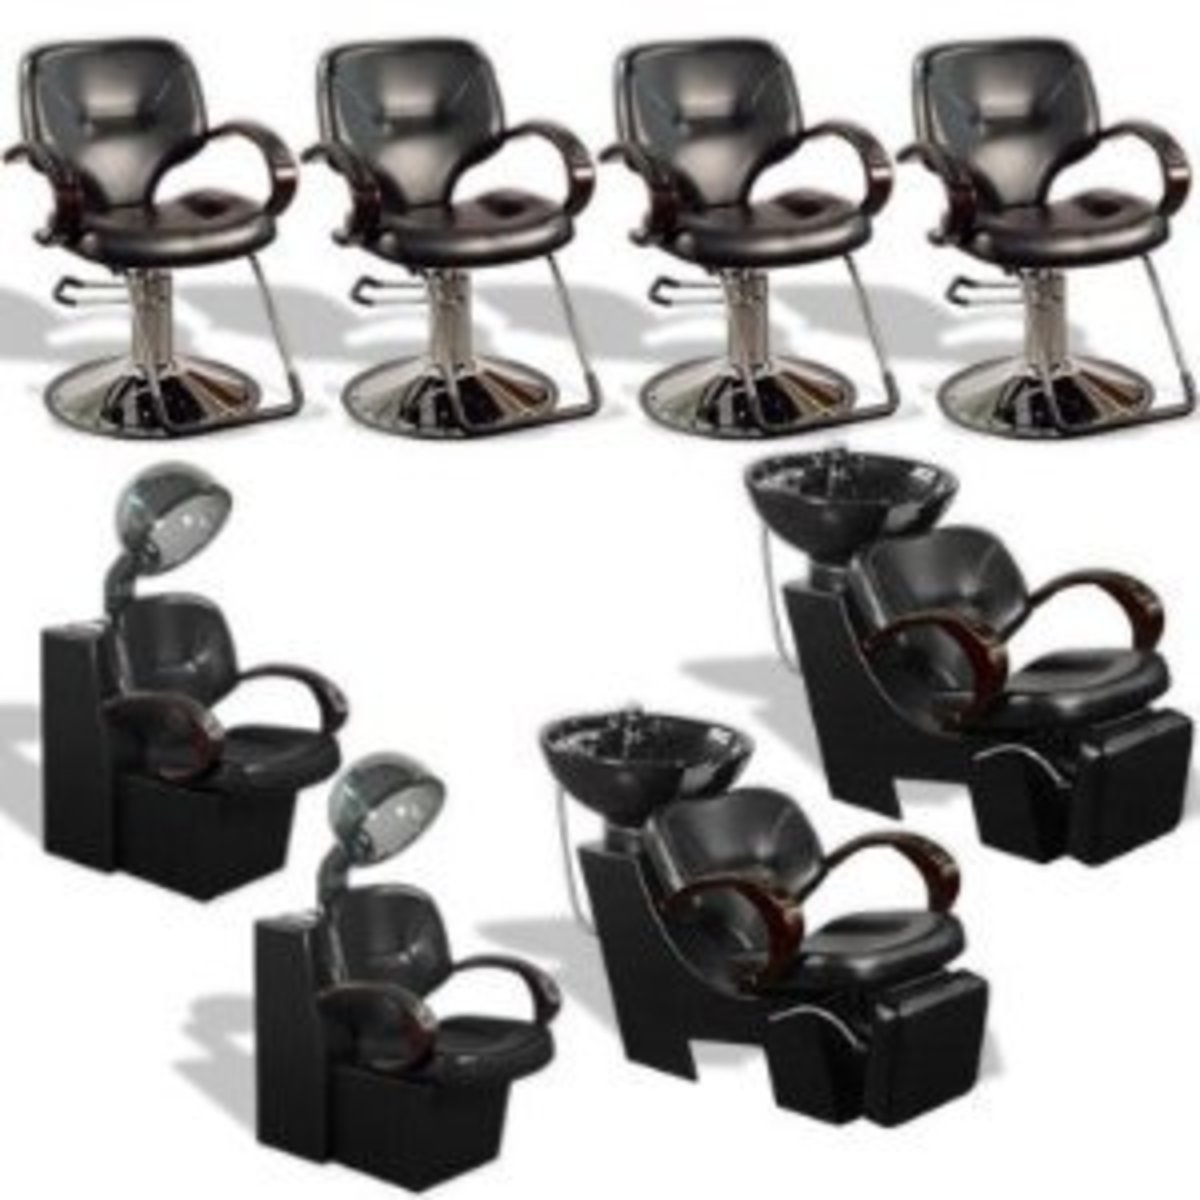 Hair salon equipment buy wholesale for Accessories for beauty salon